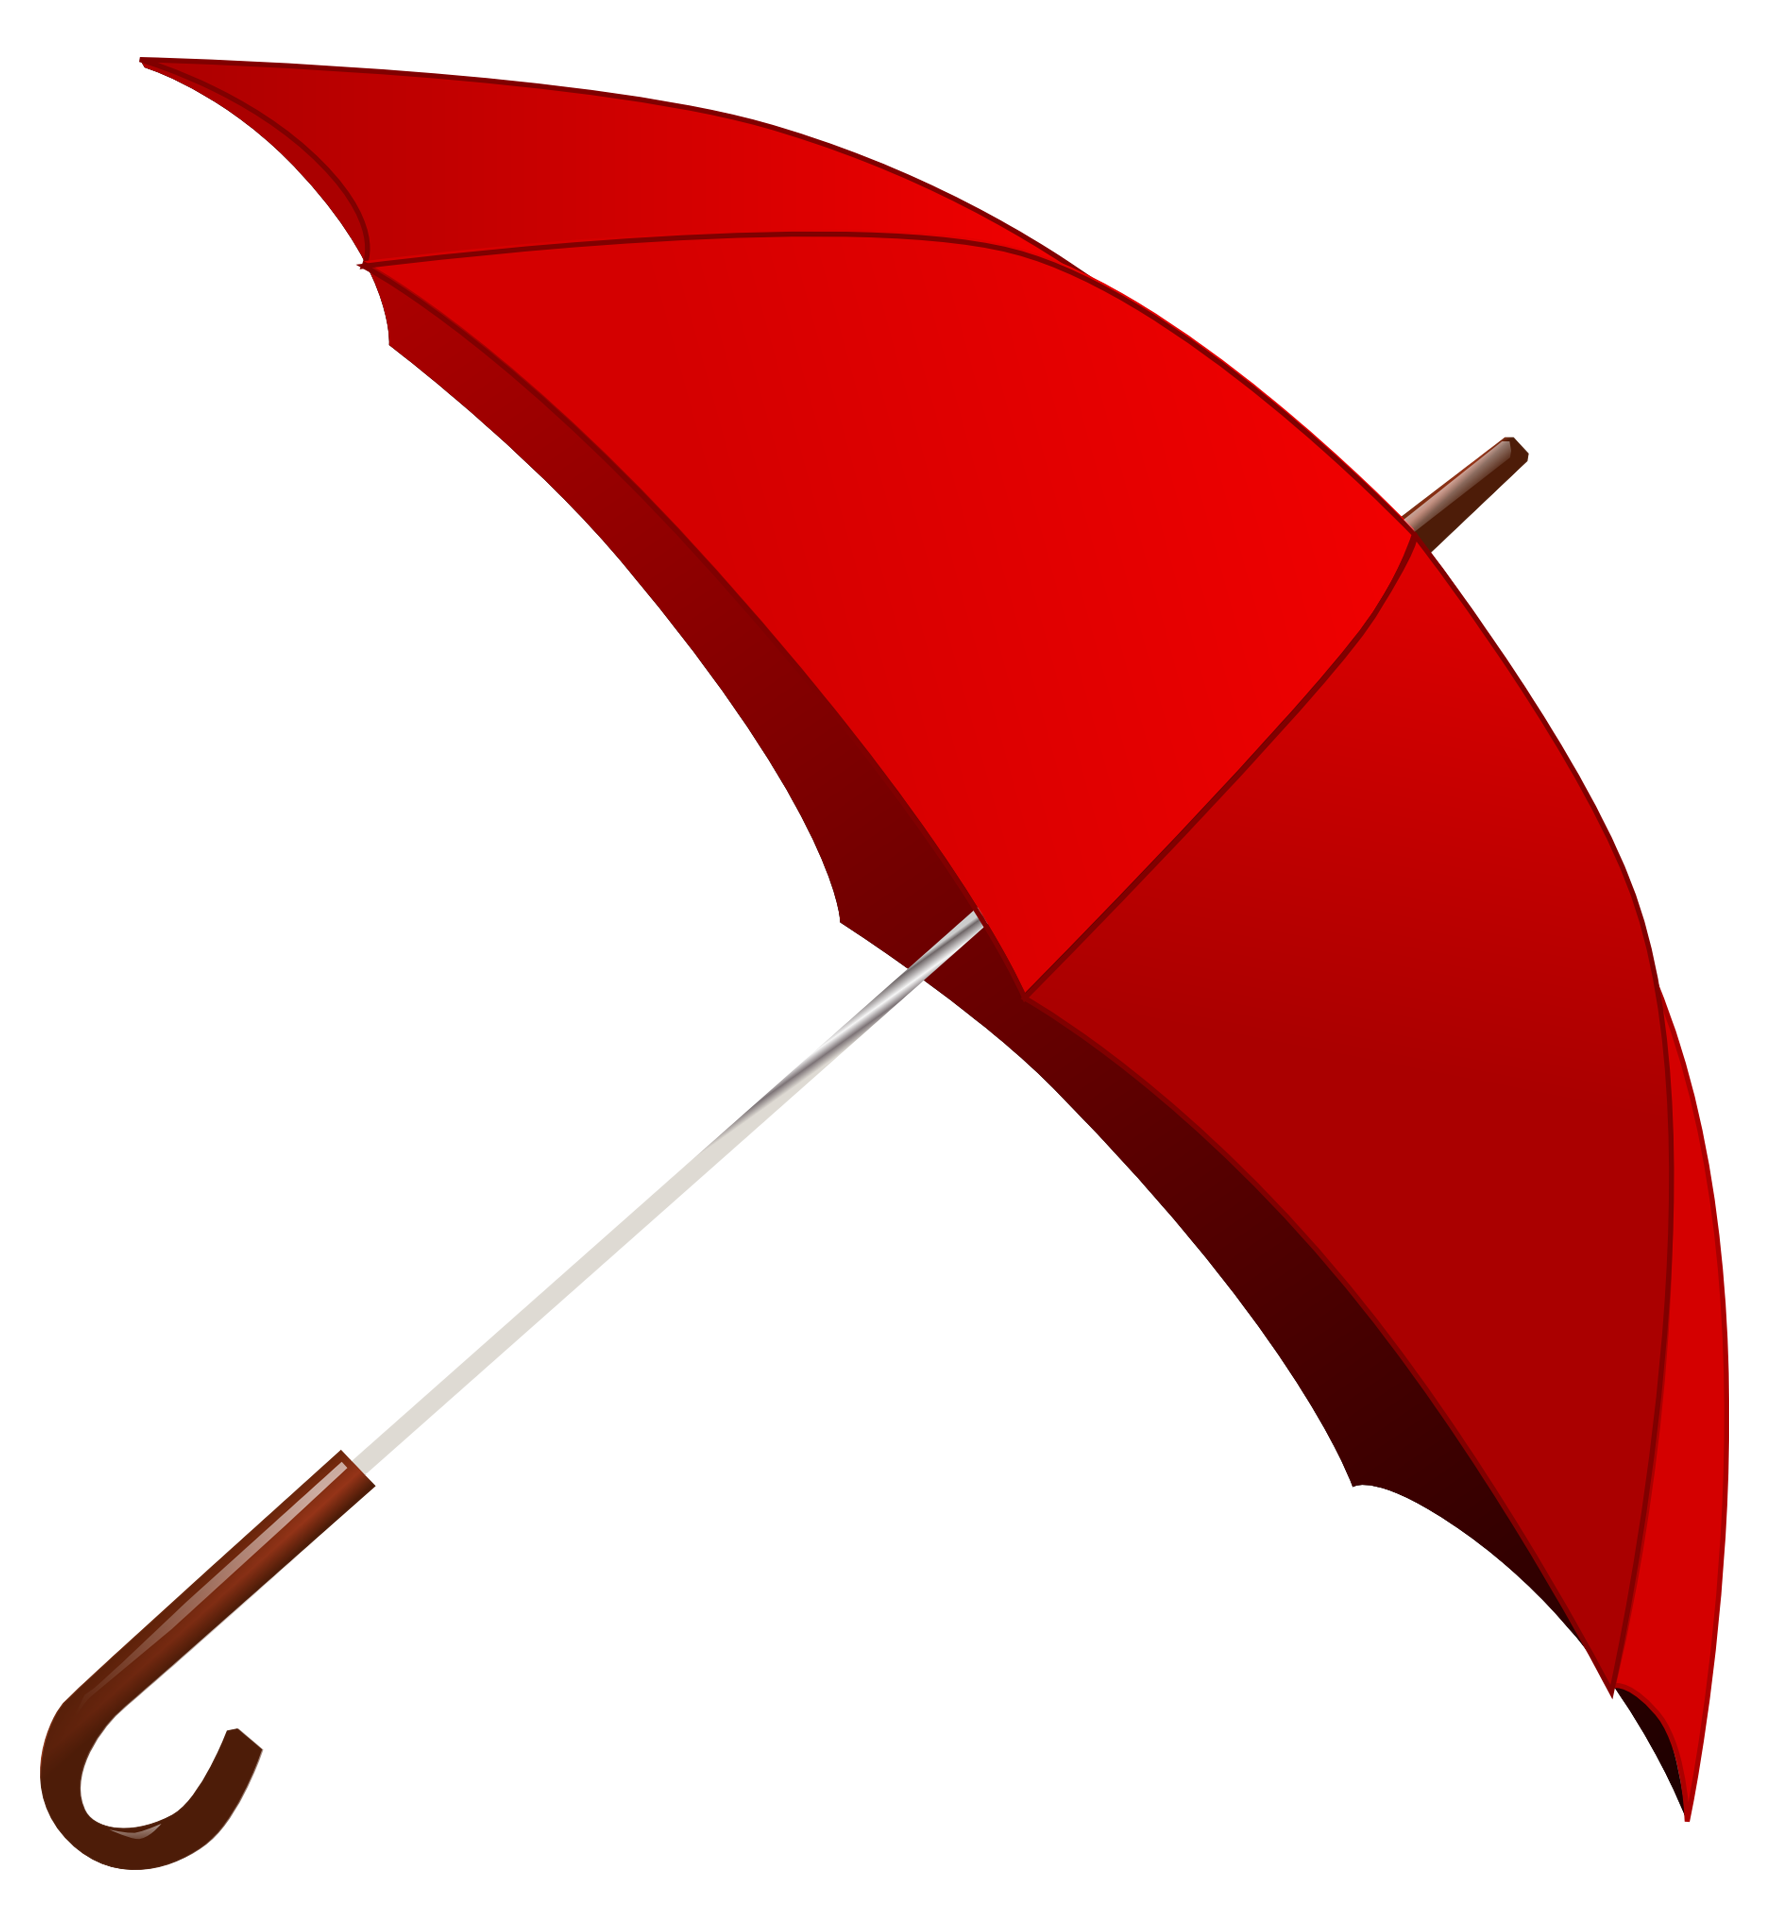 umbrella png transparent image pngpix #18772